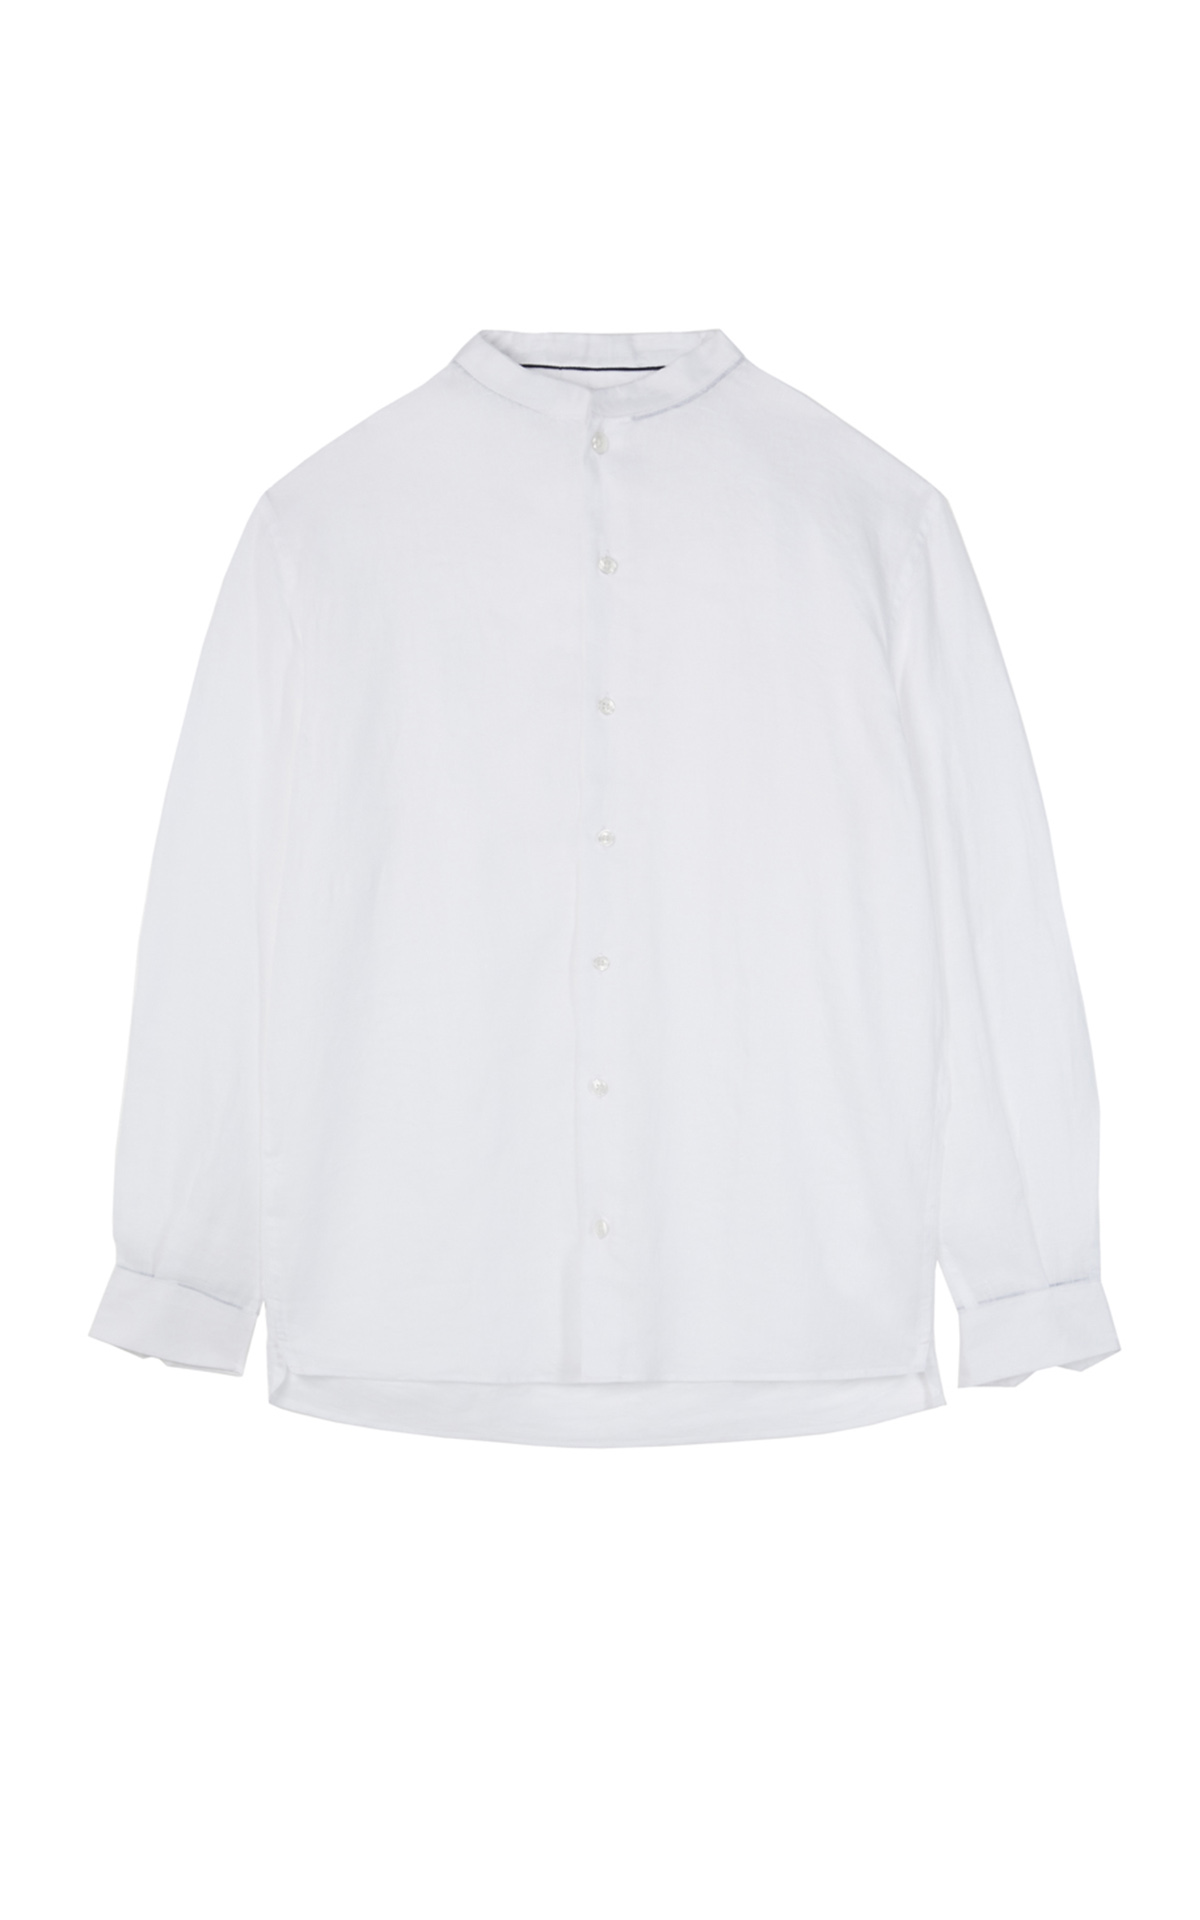 White linen shirt Adolfo Dominguez